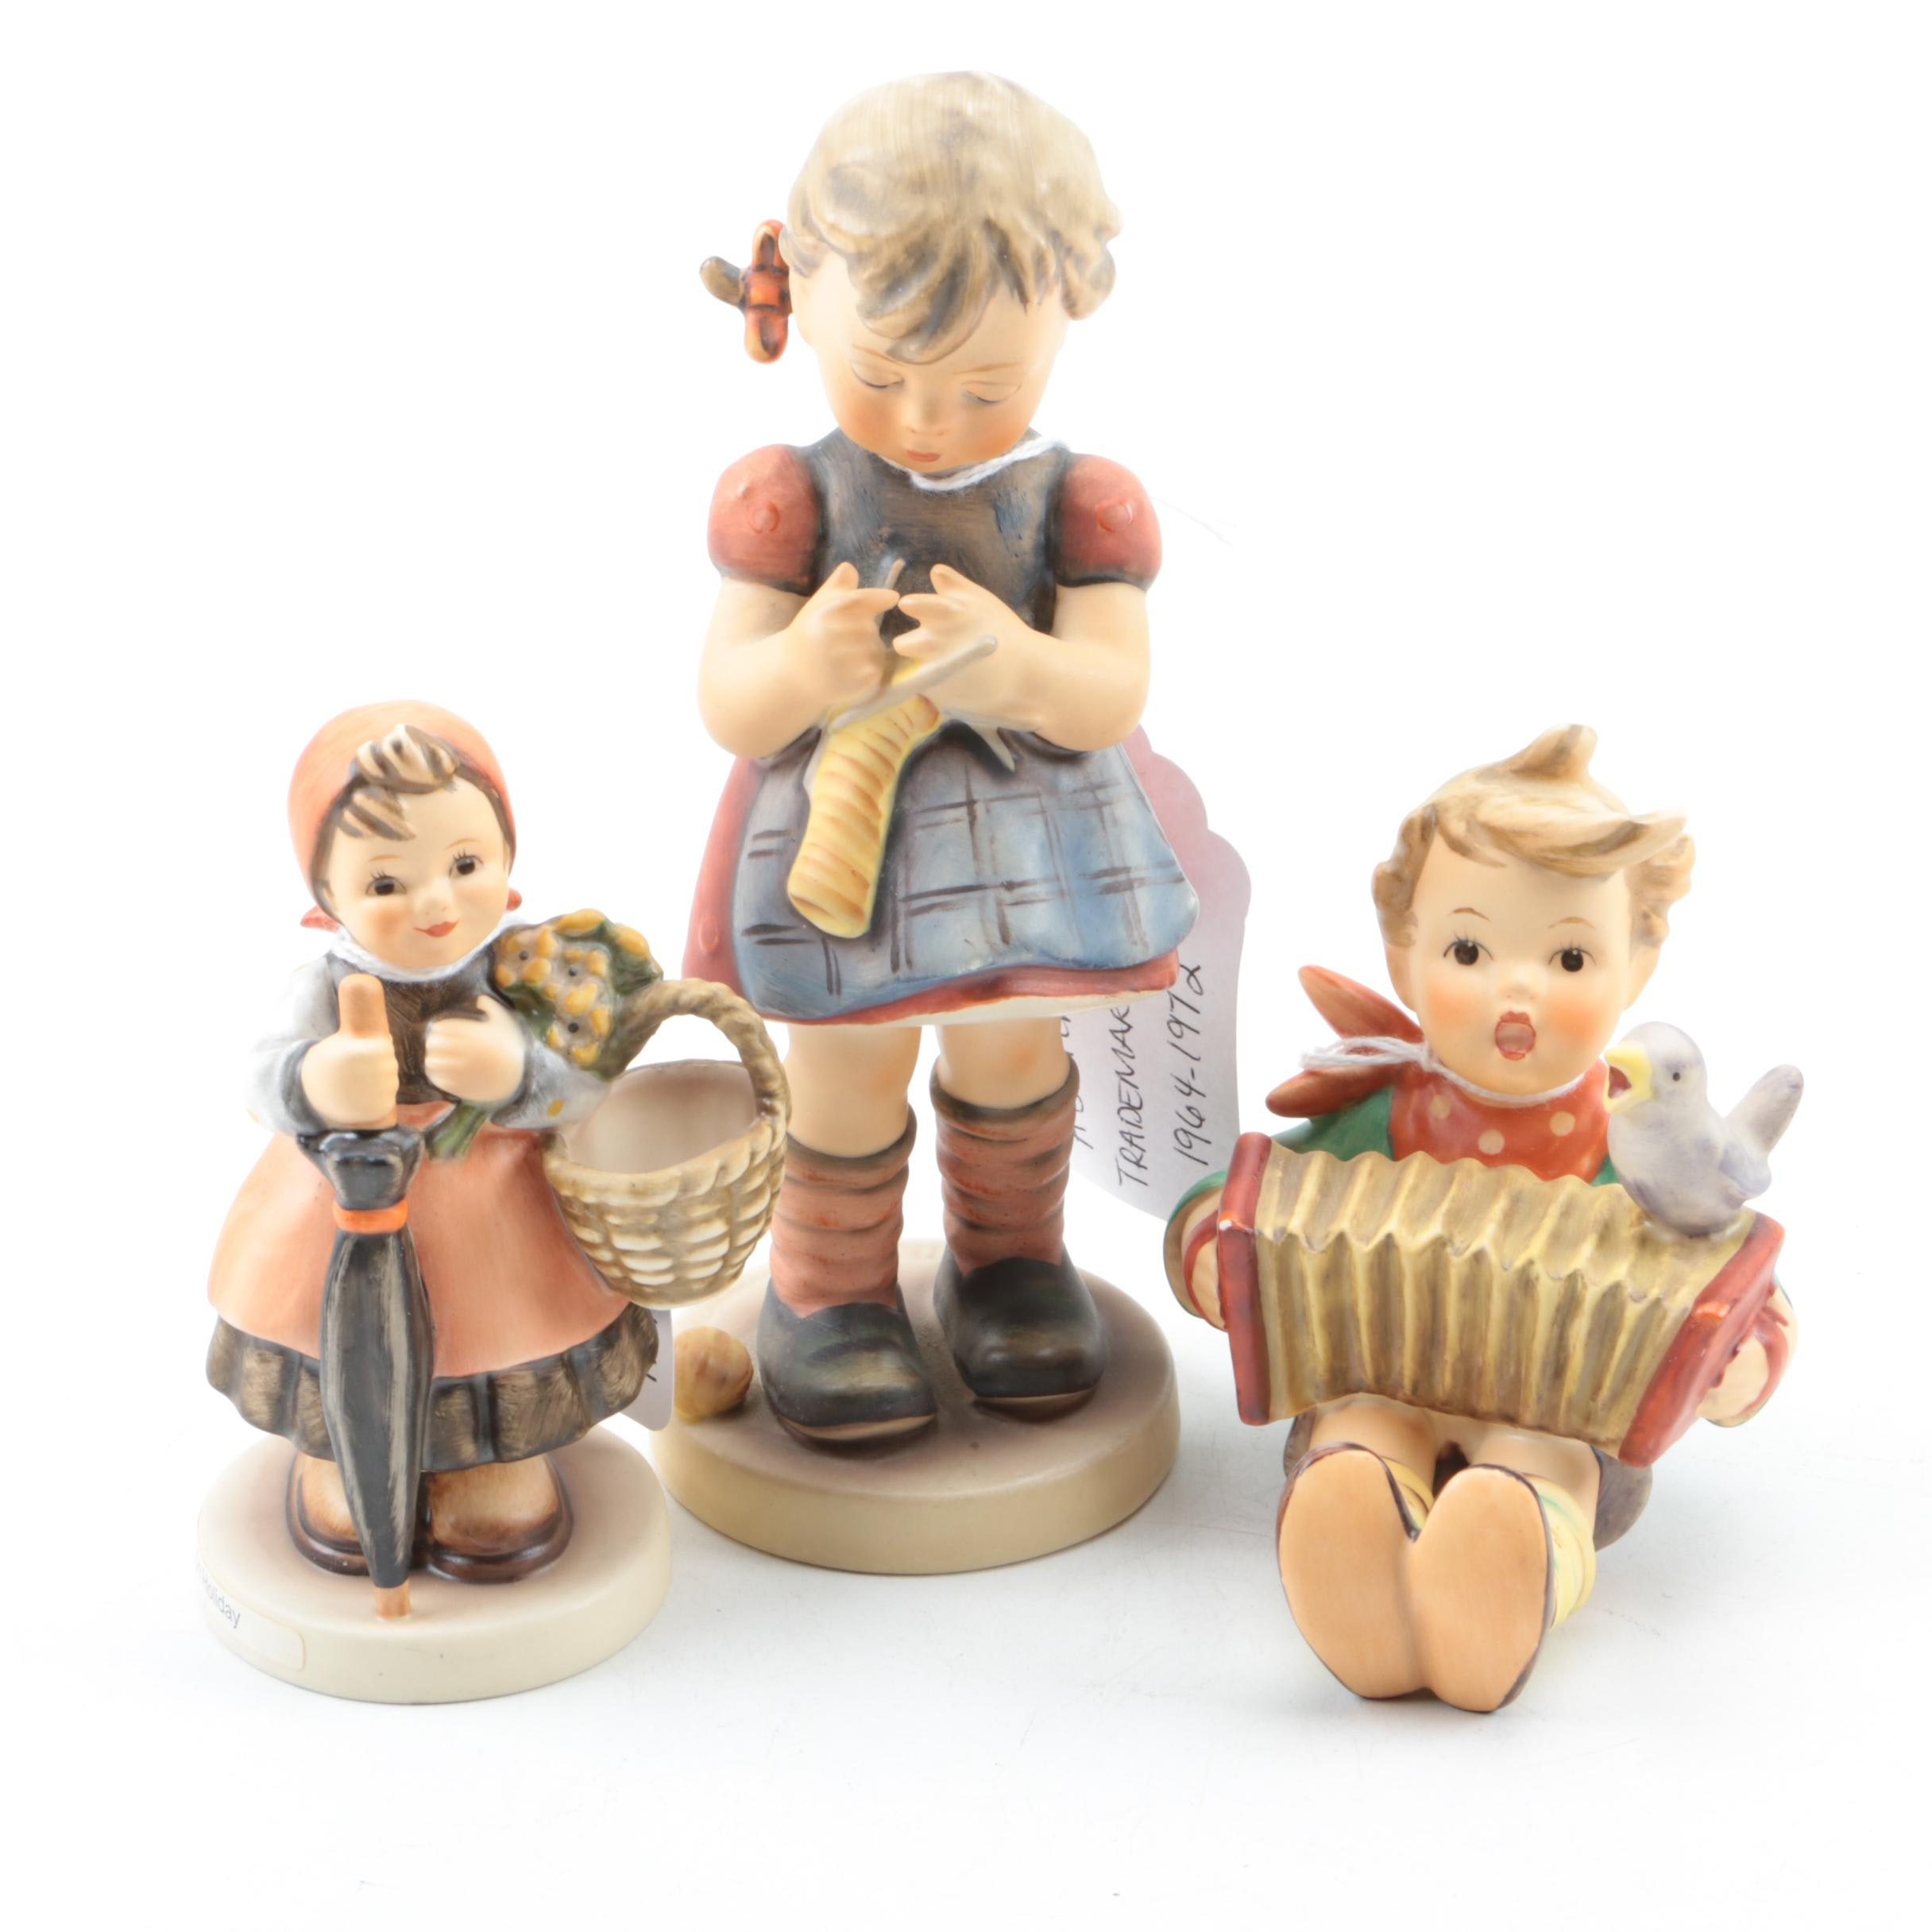 """Hummel Figurines Featuring """"On Holiday,"""" """"A Stitch in Time,"""" and """"Let's Sing"""""""